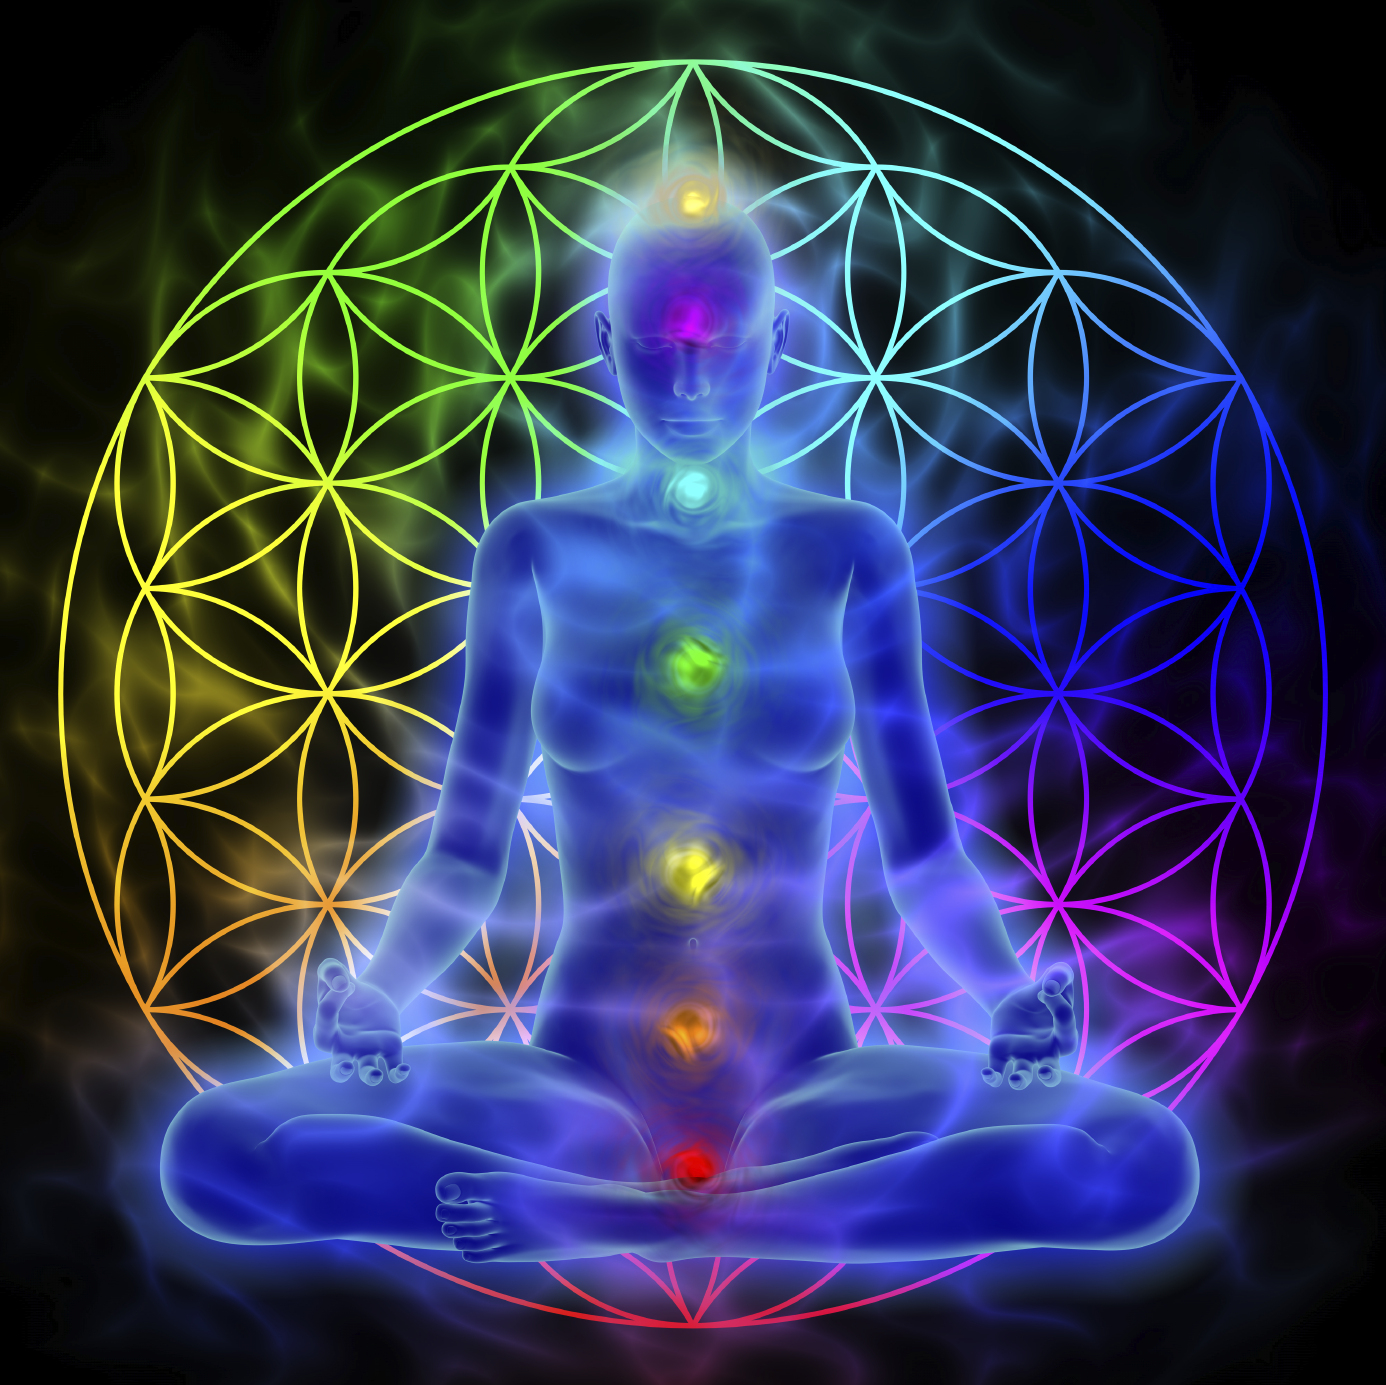 Try These Chakras Images Download {Mahindra Racing}